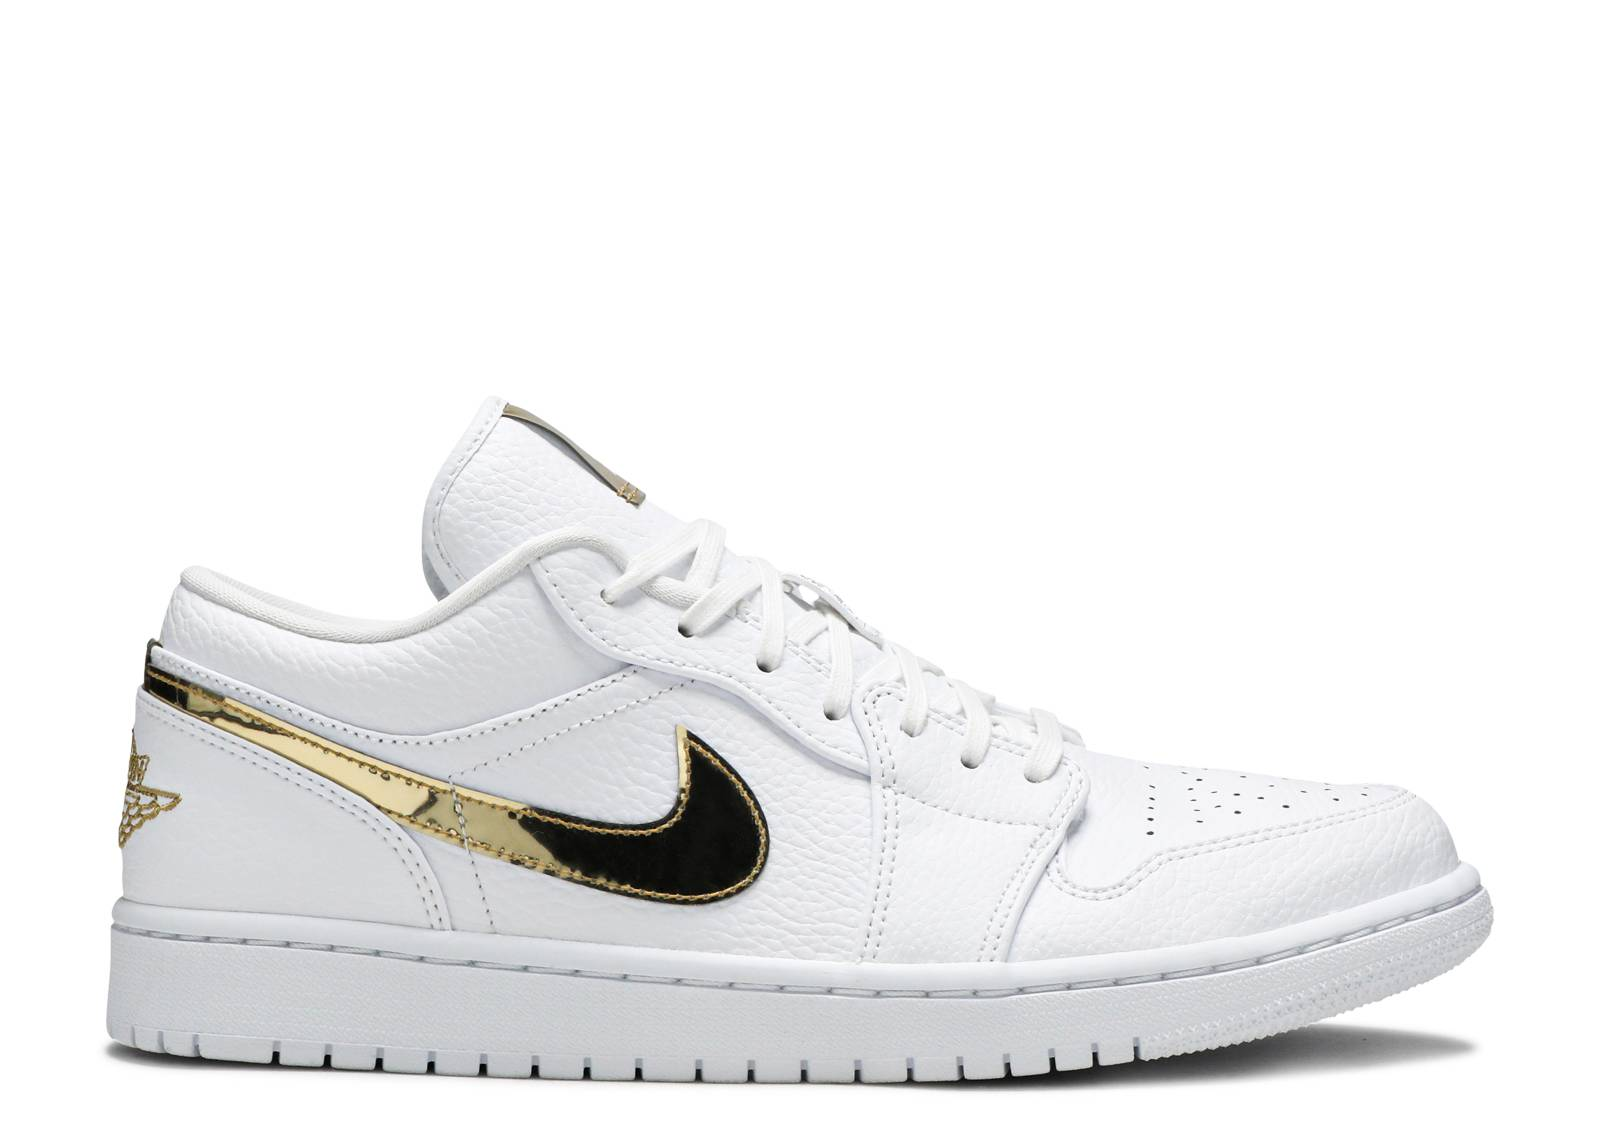 AIR JORDAN 1 RETRO LOW 'WHITE METALLIC GOLD'